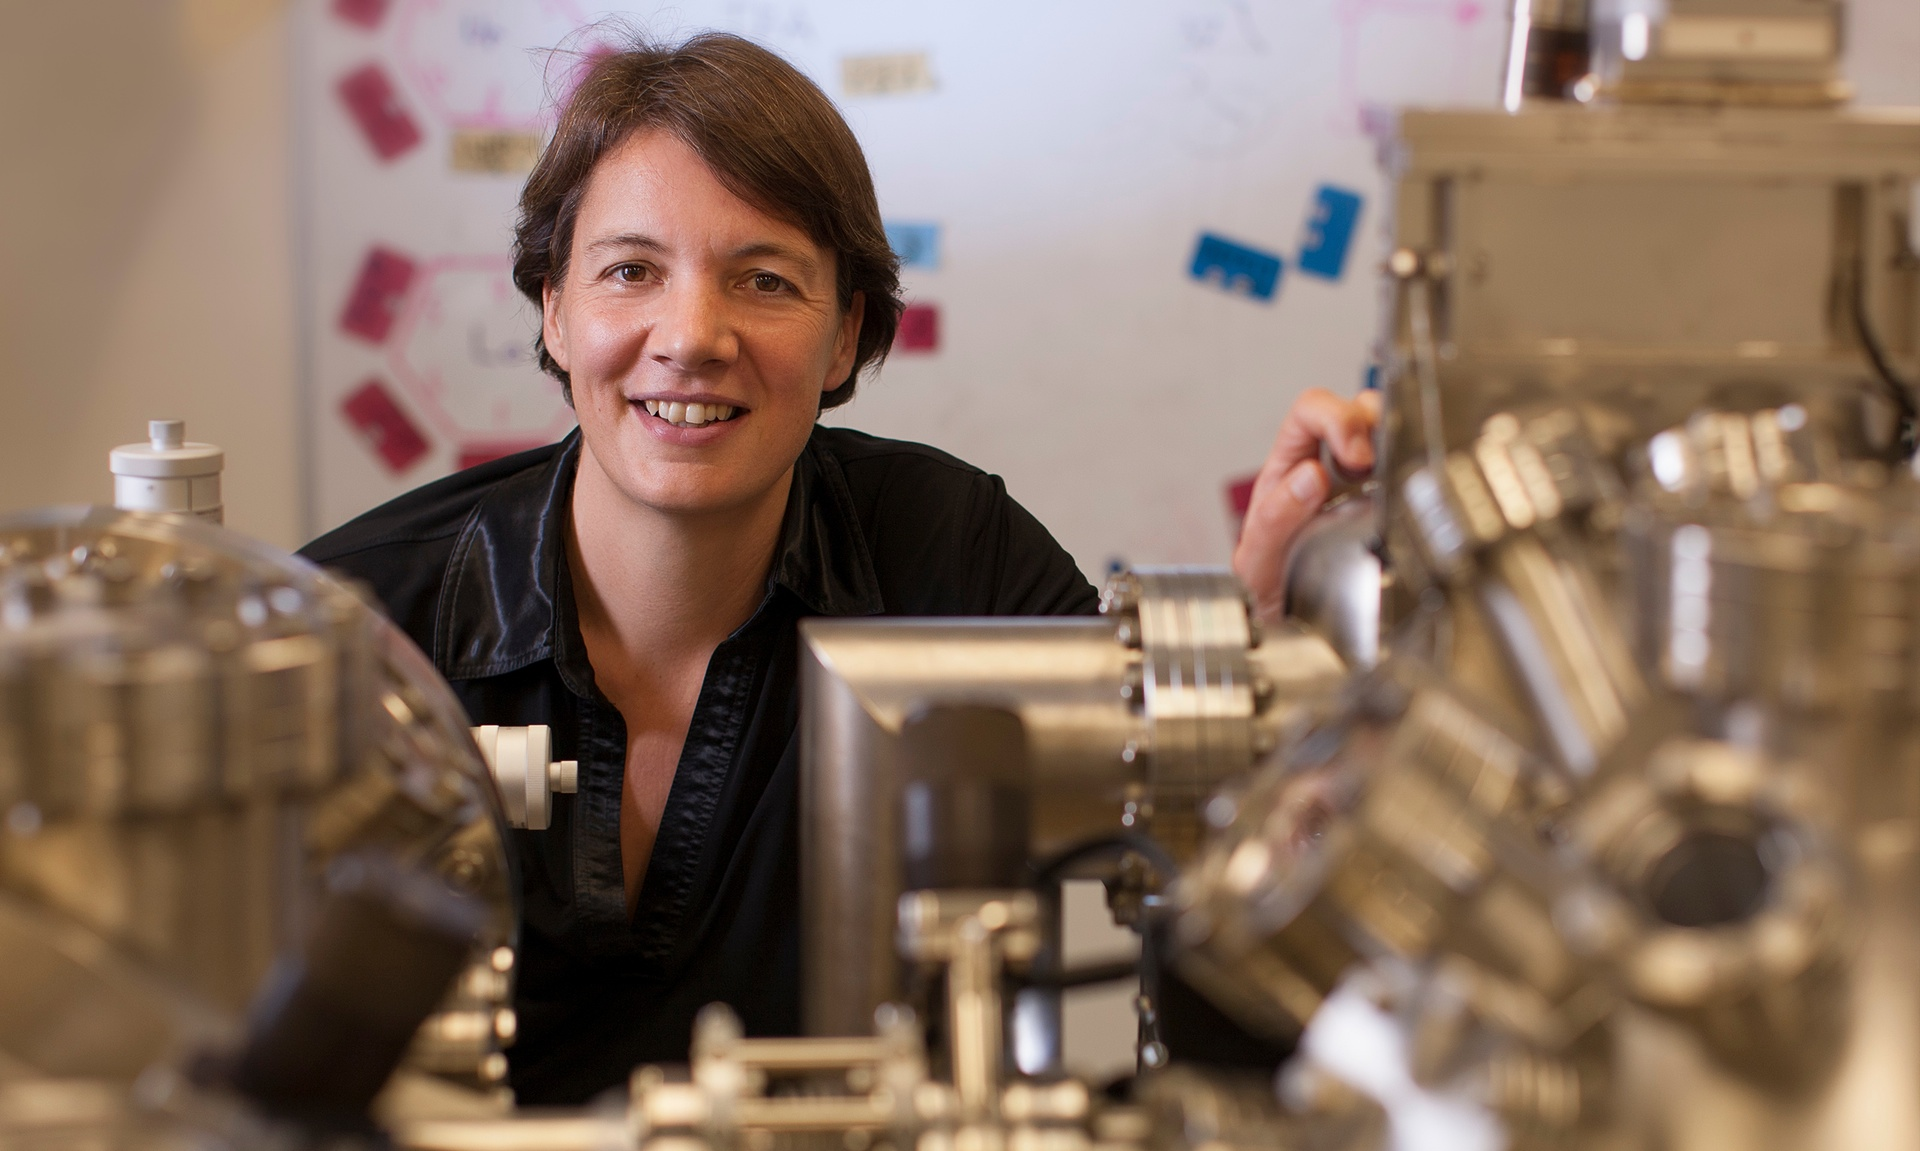 Meet the woman leading the race to build the world's first quantum computer